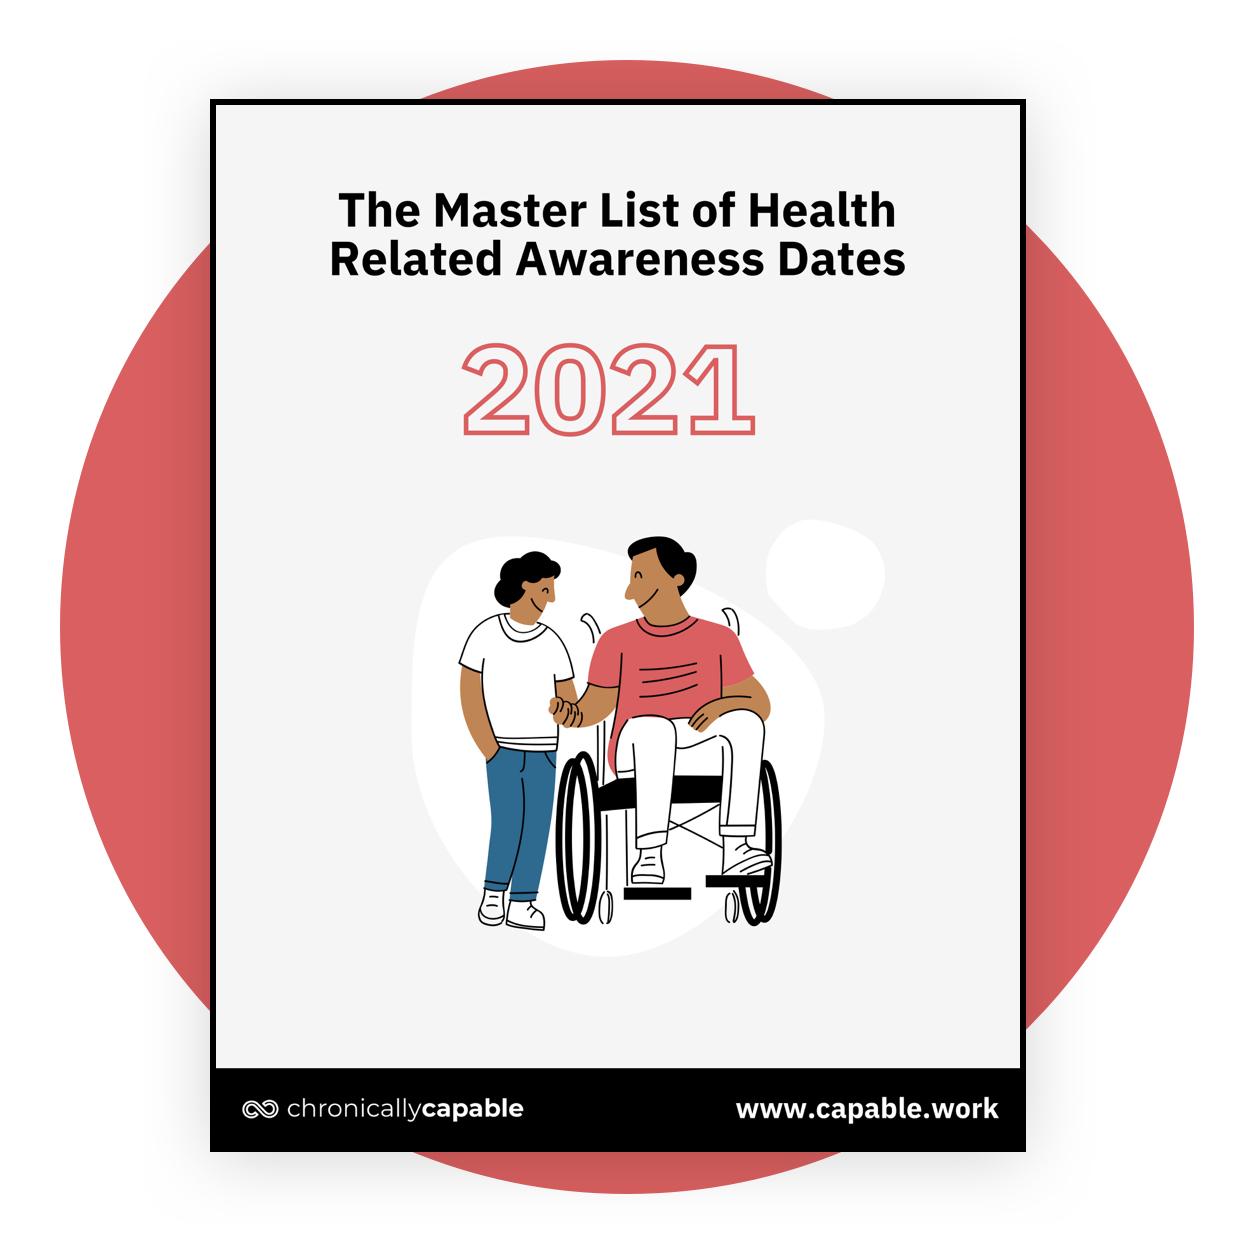 The Master List of Health Related Awareness Dates 2021 by Chronically Capable